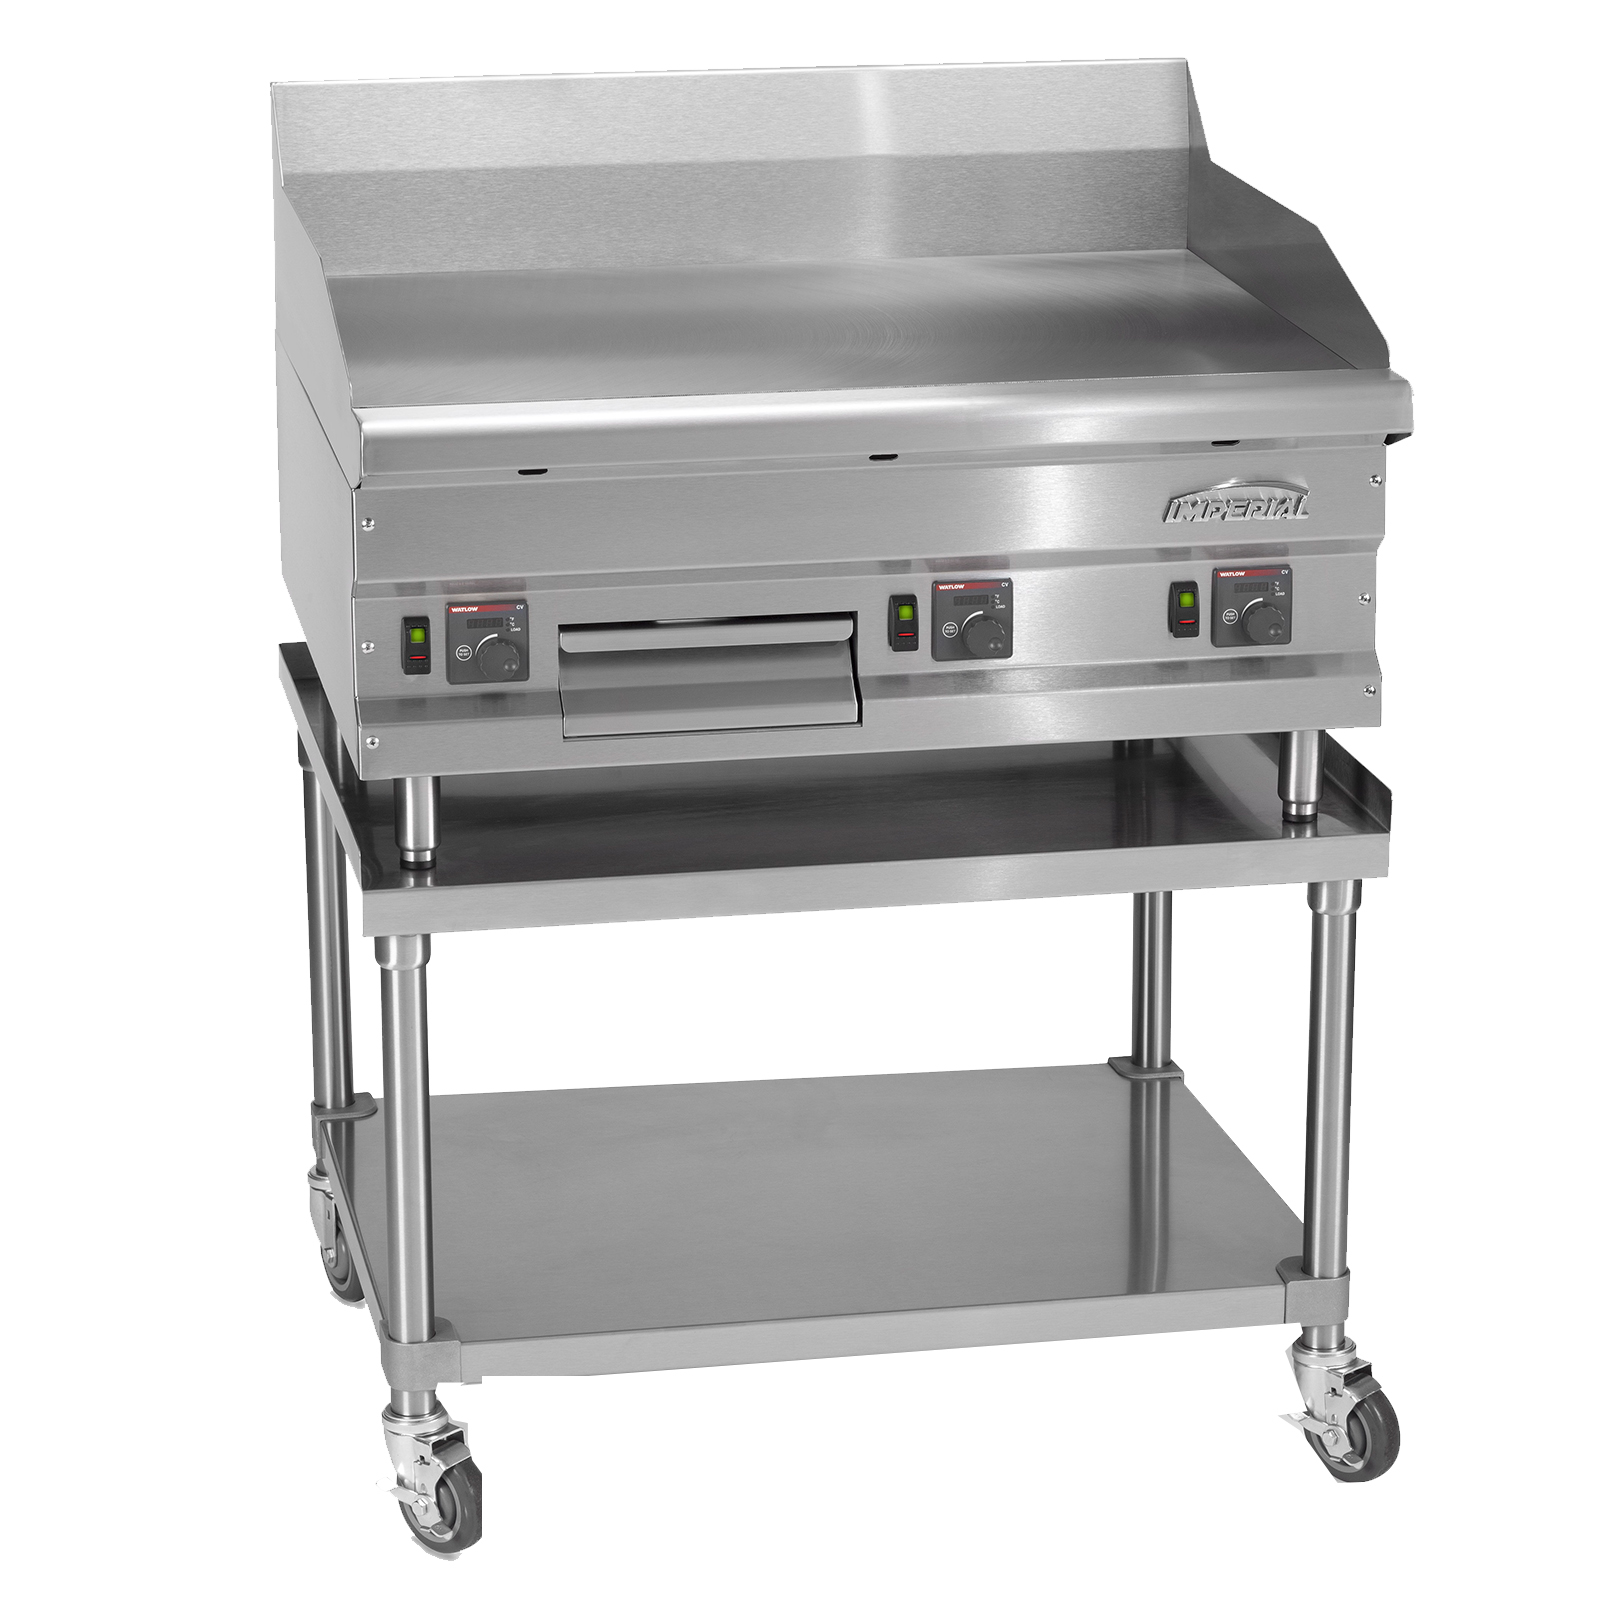 Imperial IHEG-48 griddle, gas, countertop